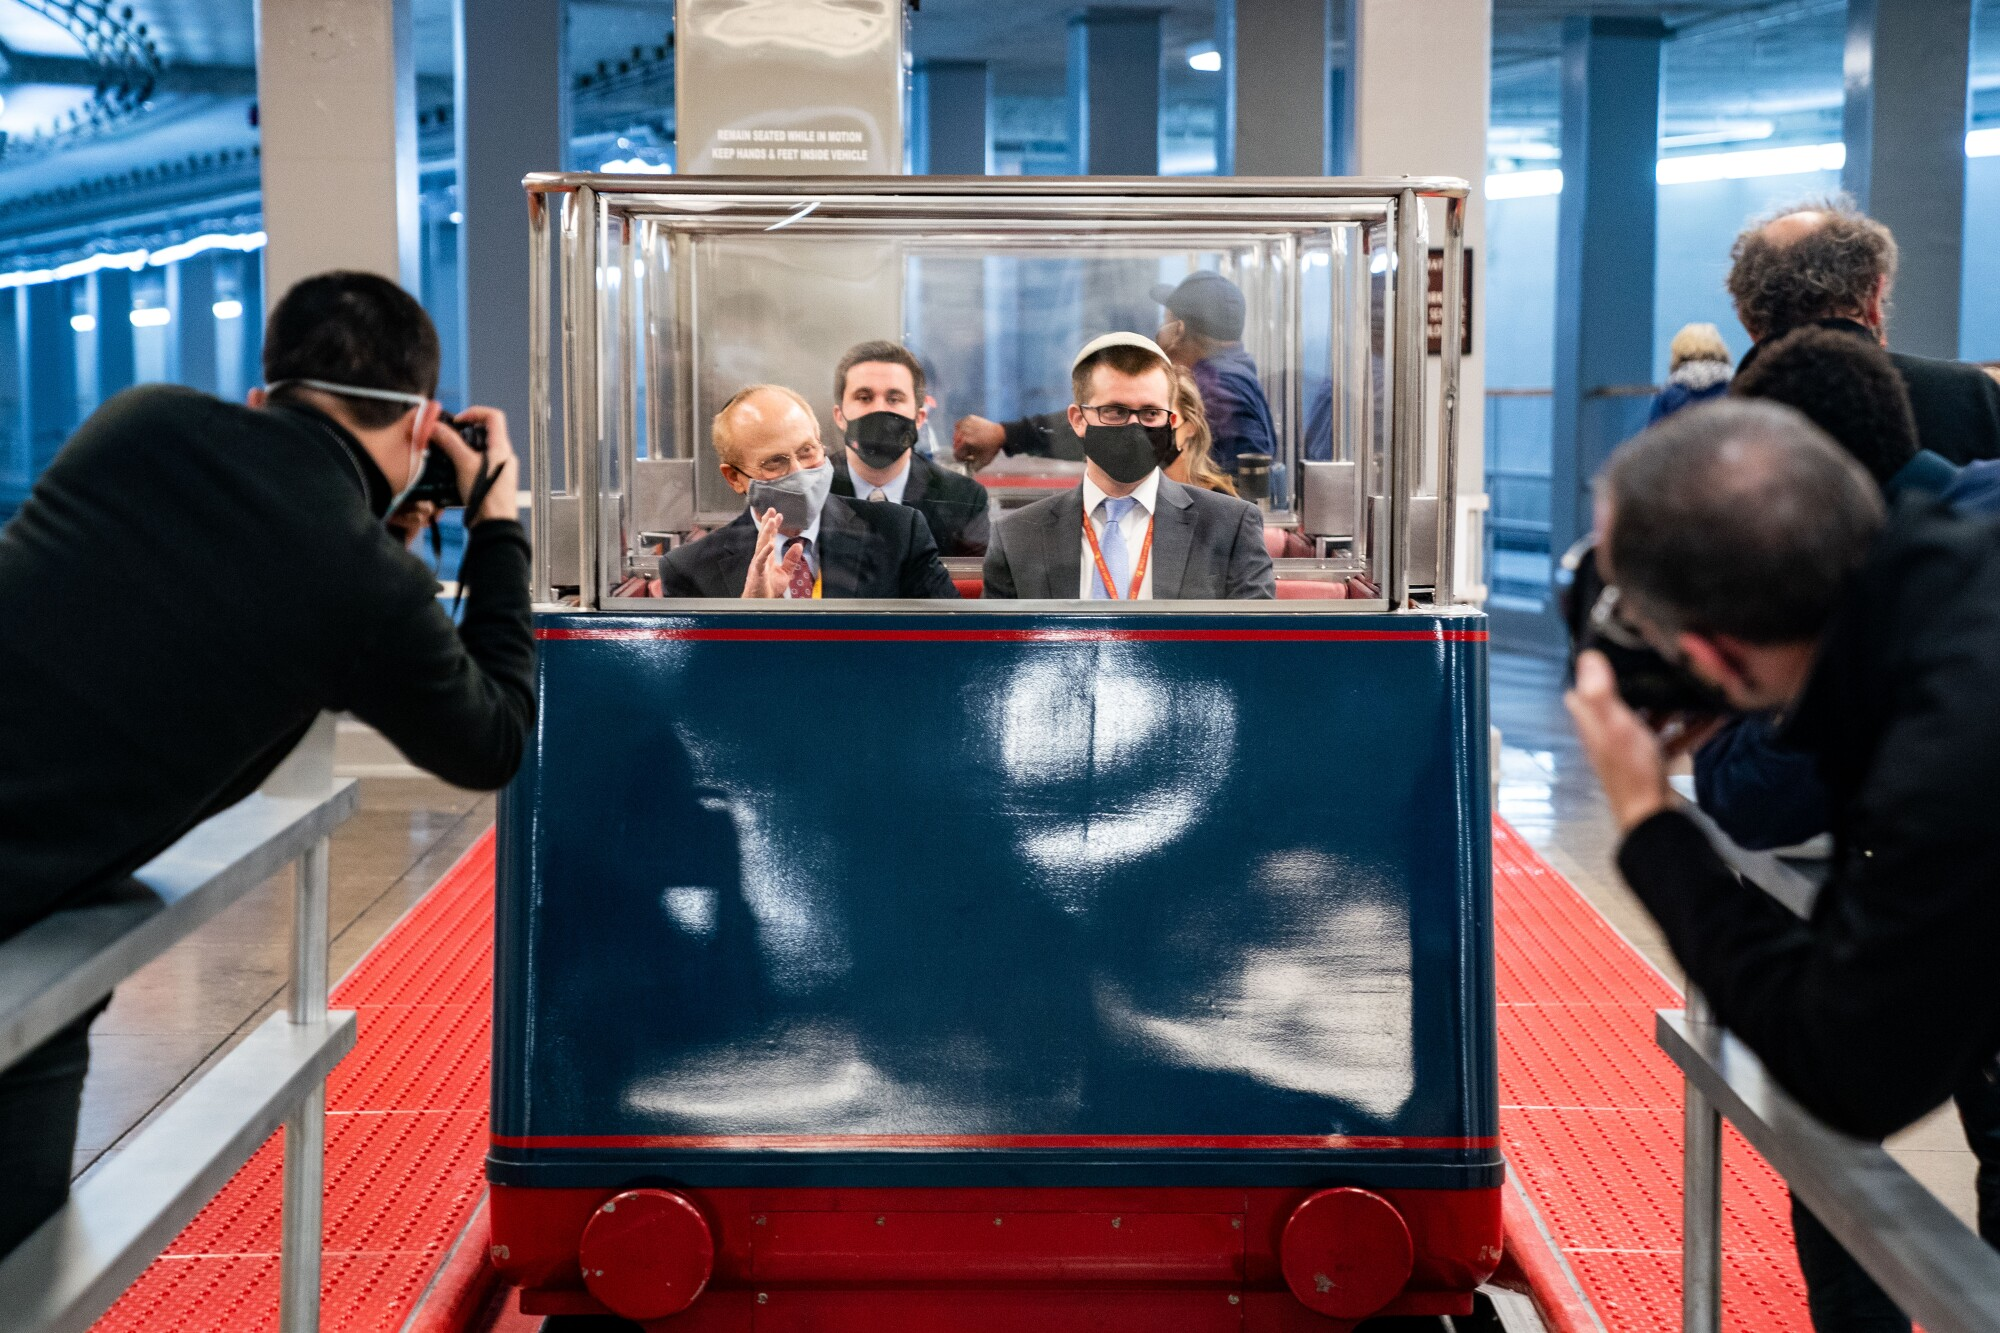 People sitting in a Senate subway car are photographed by journalists